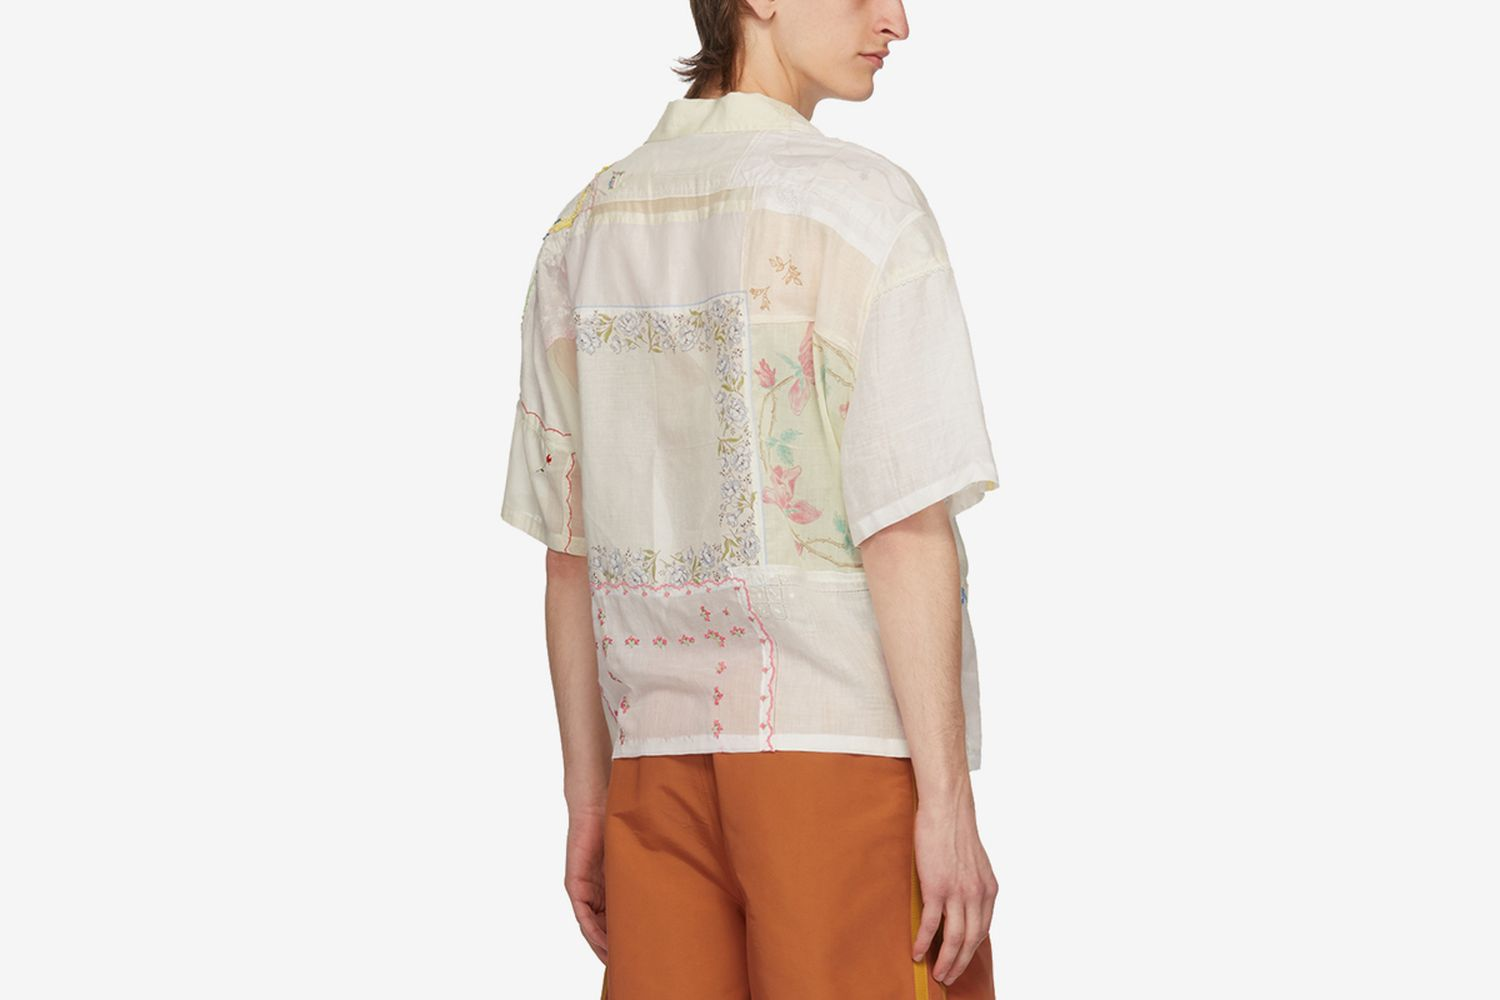 One-Of-A-Kind Handkerchief Patchwork Shirt